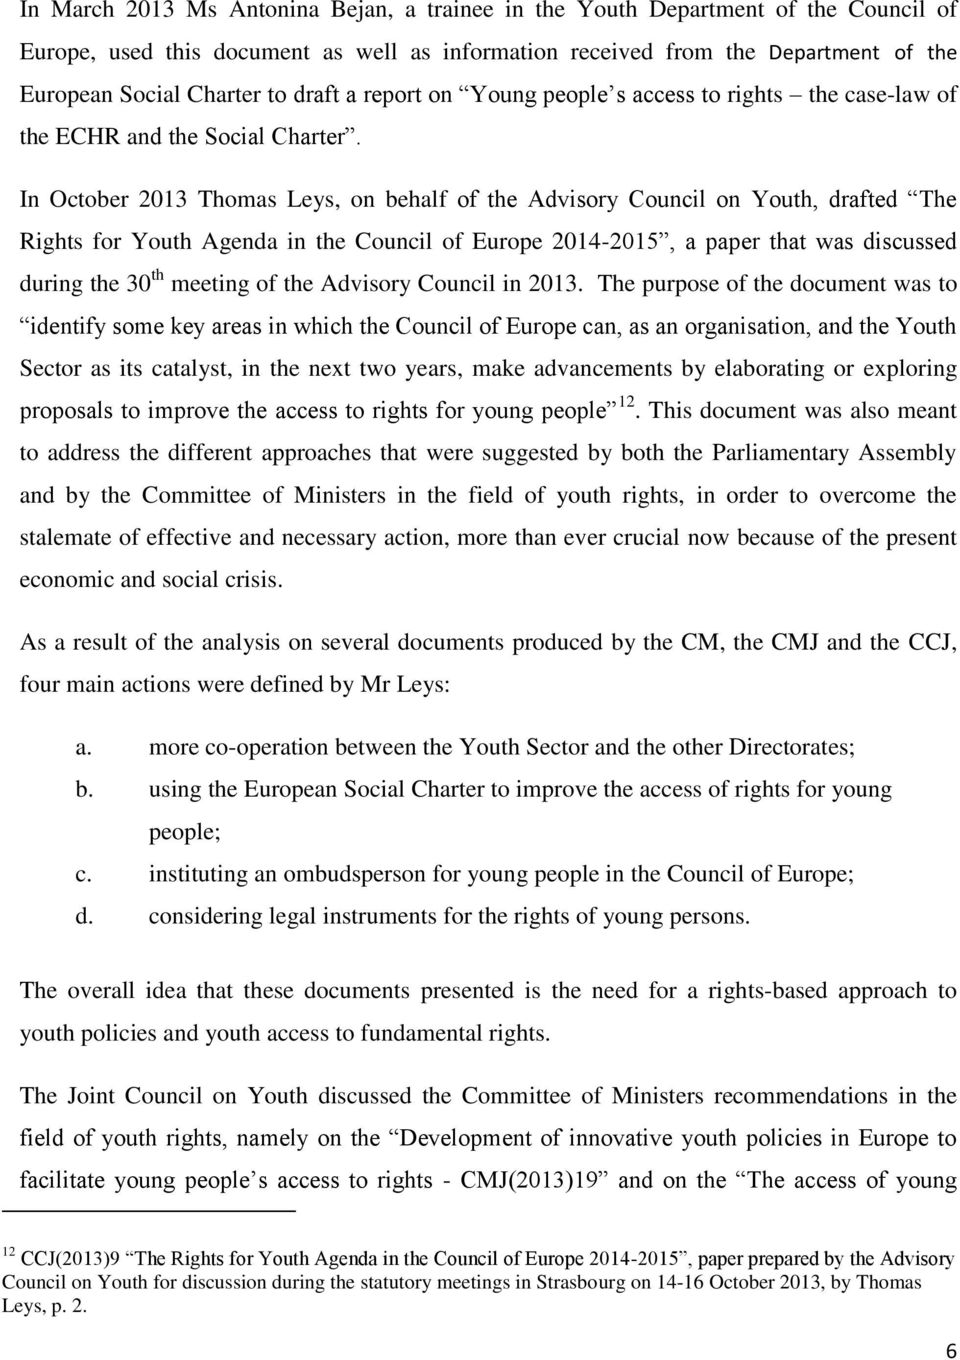 In October 2013 Thomas Leys, on behalf of the Advisory Council on Youth, drafted The Rights for Youth Agenda in the Council of Europe 2014-2015, a paper that was discussed during the 30 th meeting of